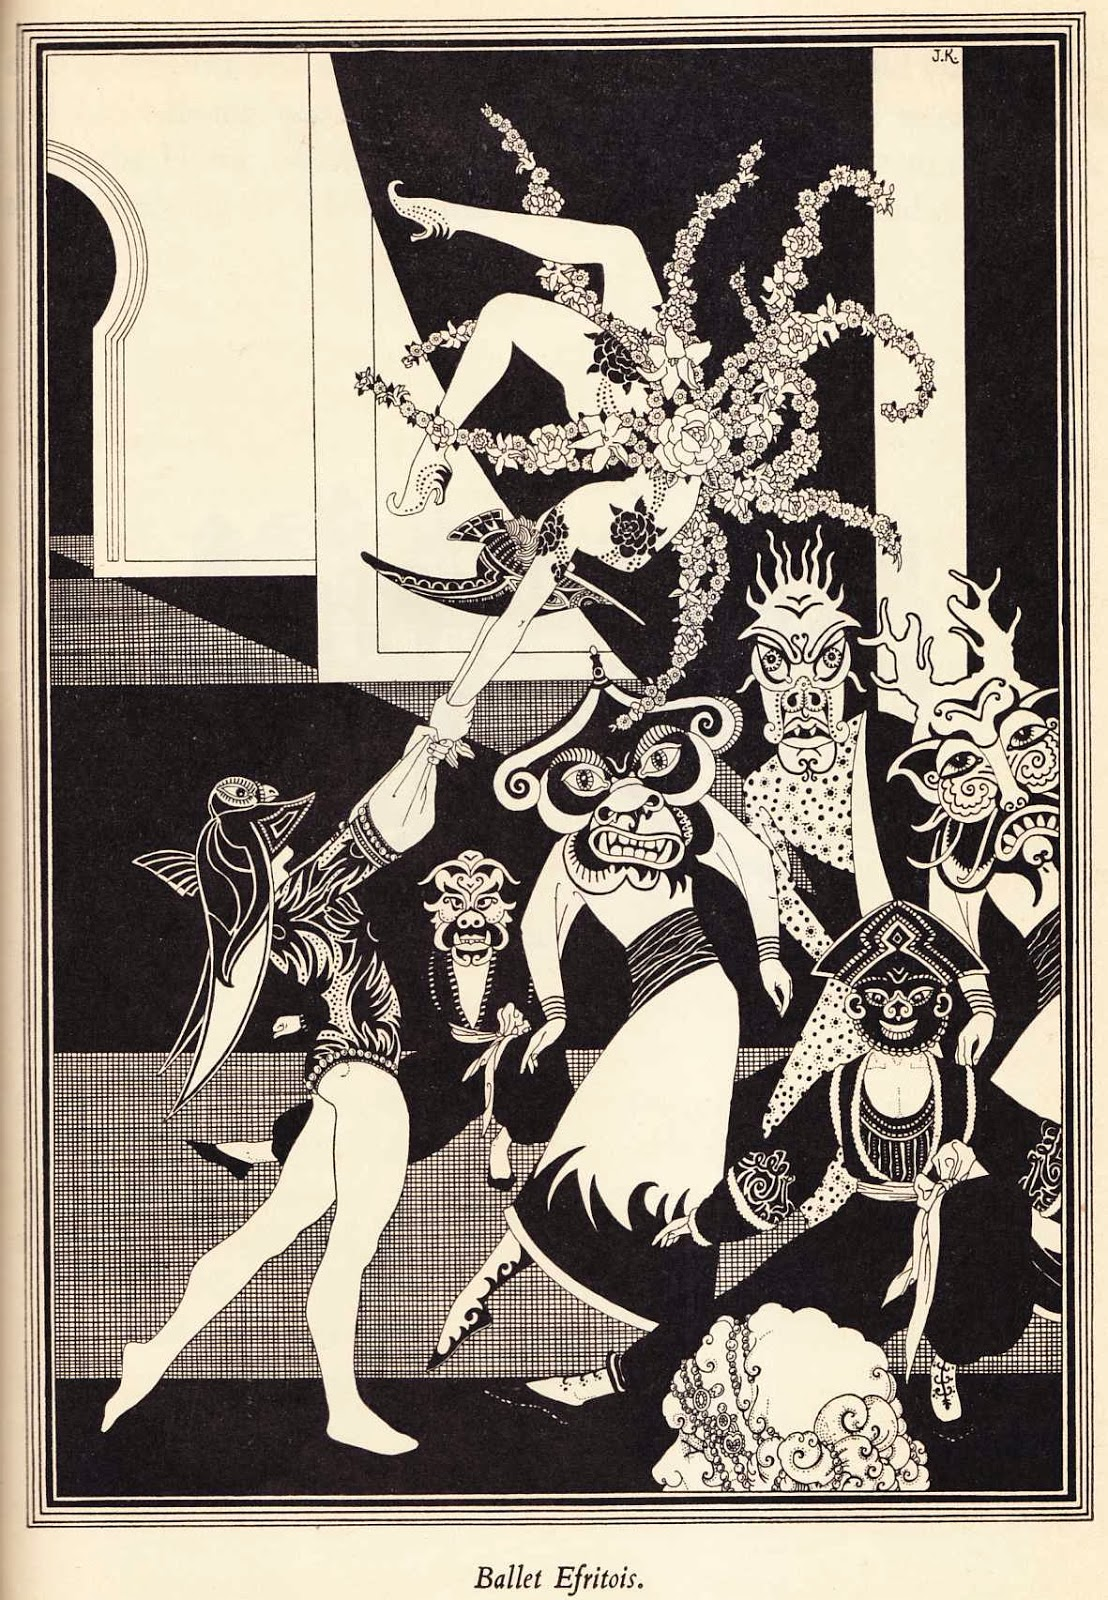 """John Kettelwell - Ballet Efritois - Illustration from """"The Story of Aladdin and the Wonderful Lamp,"""" 1928"""